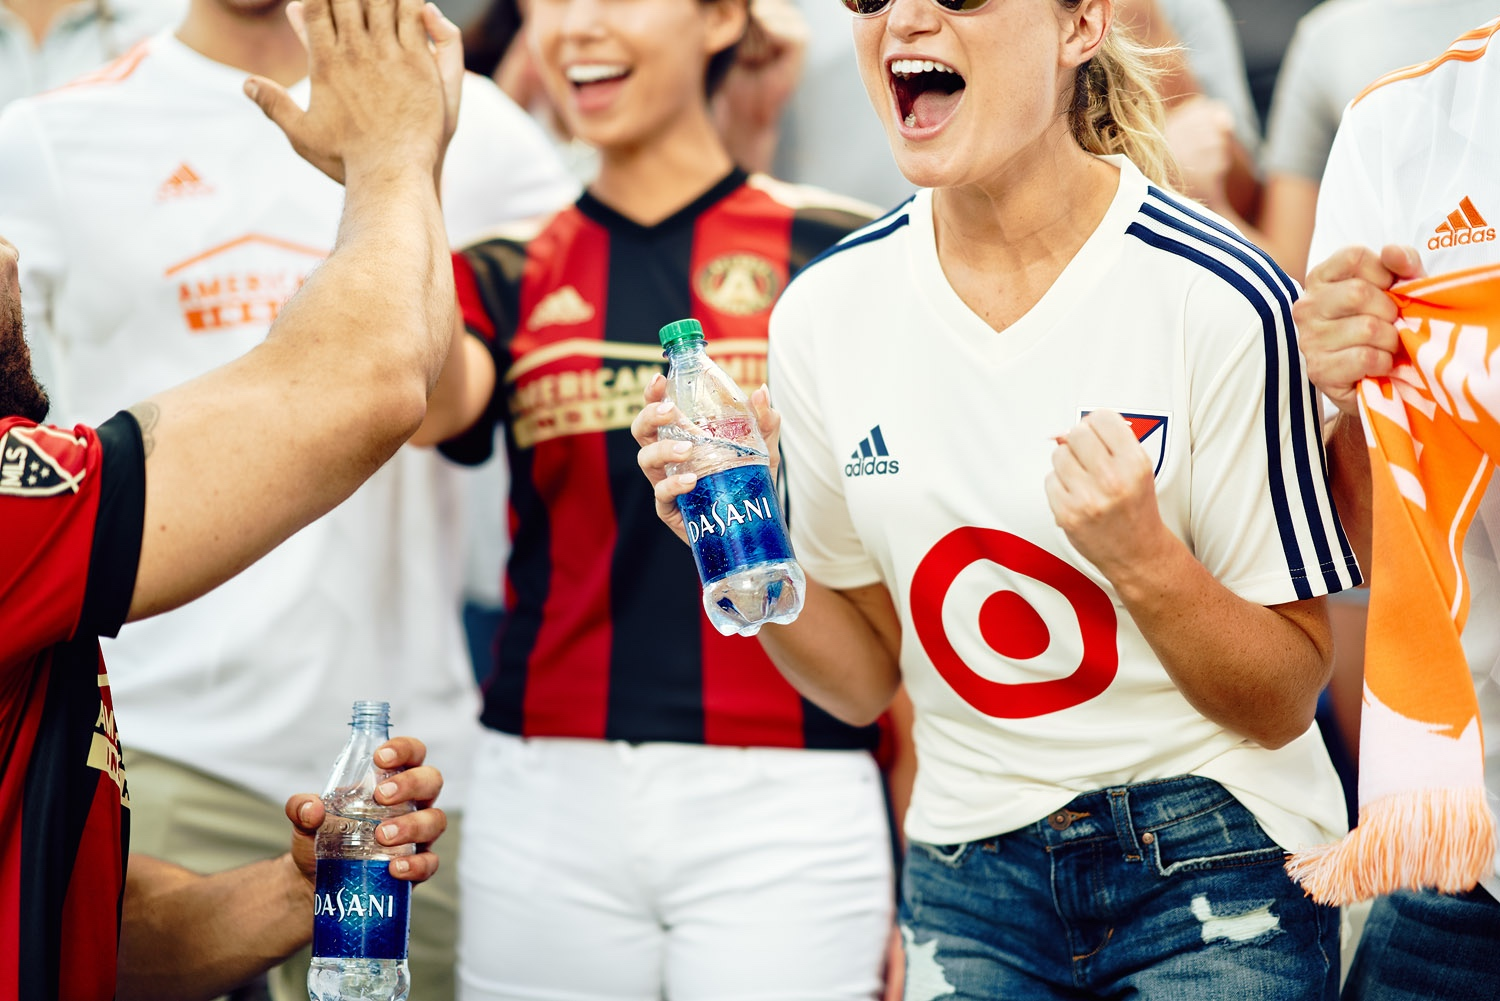 hales+photo+atlanta+advertising+campaign+consumer+product+photography+commercial+photographers+production+lifestyle+georgia+coke+dasani+coca+cola+002b.jpg